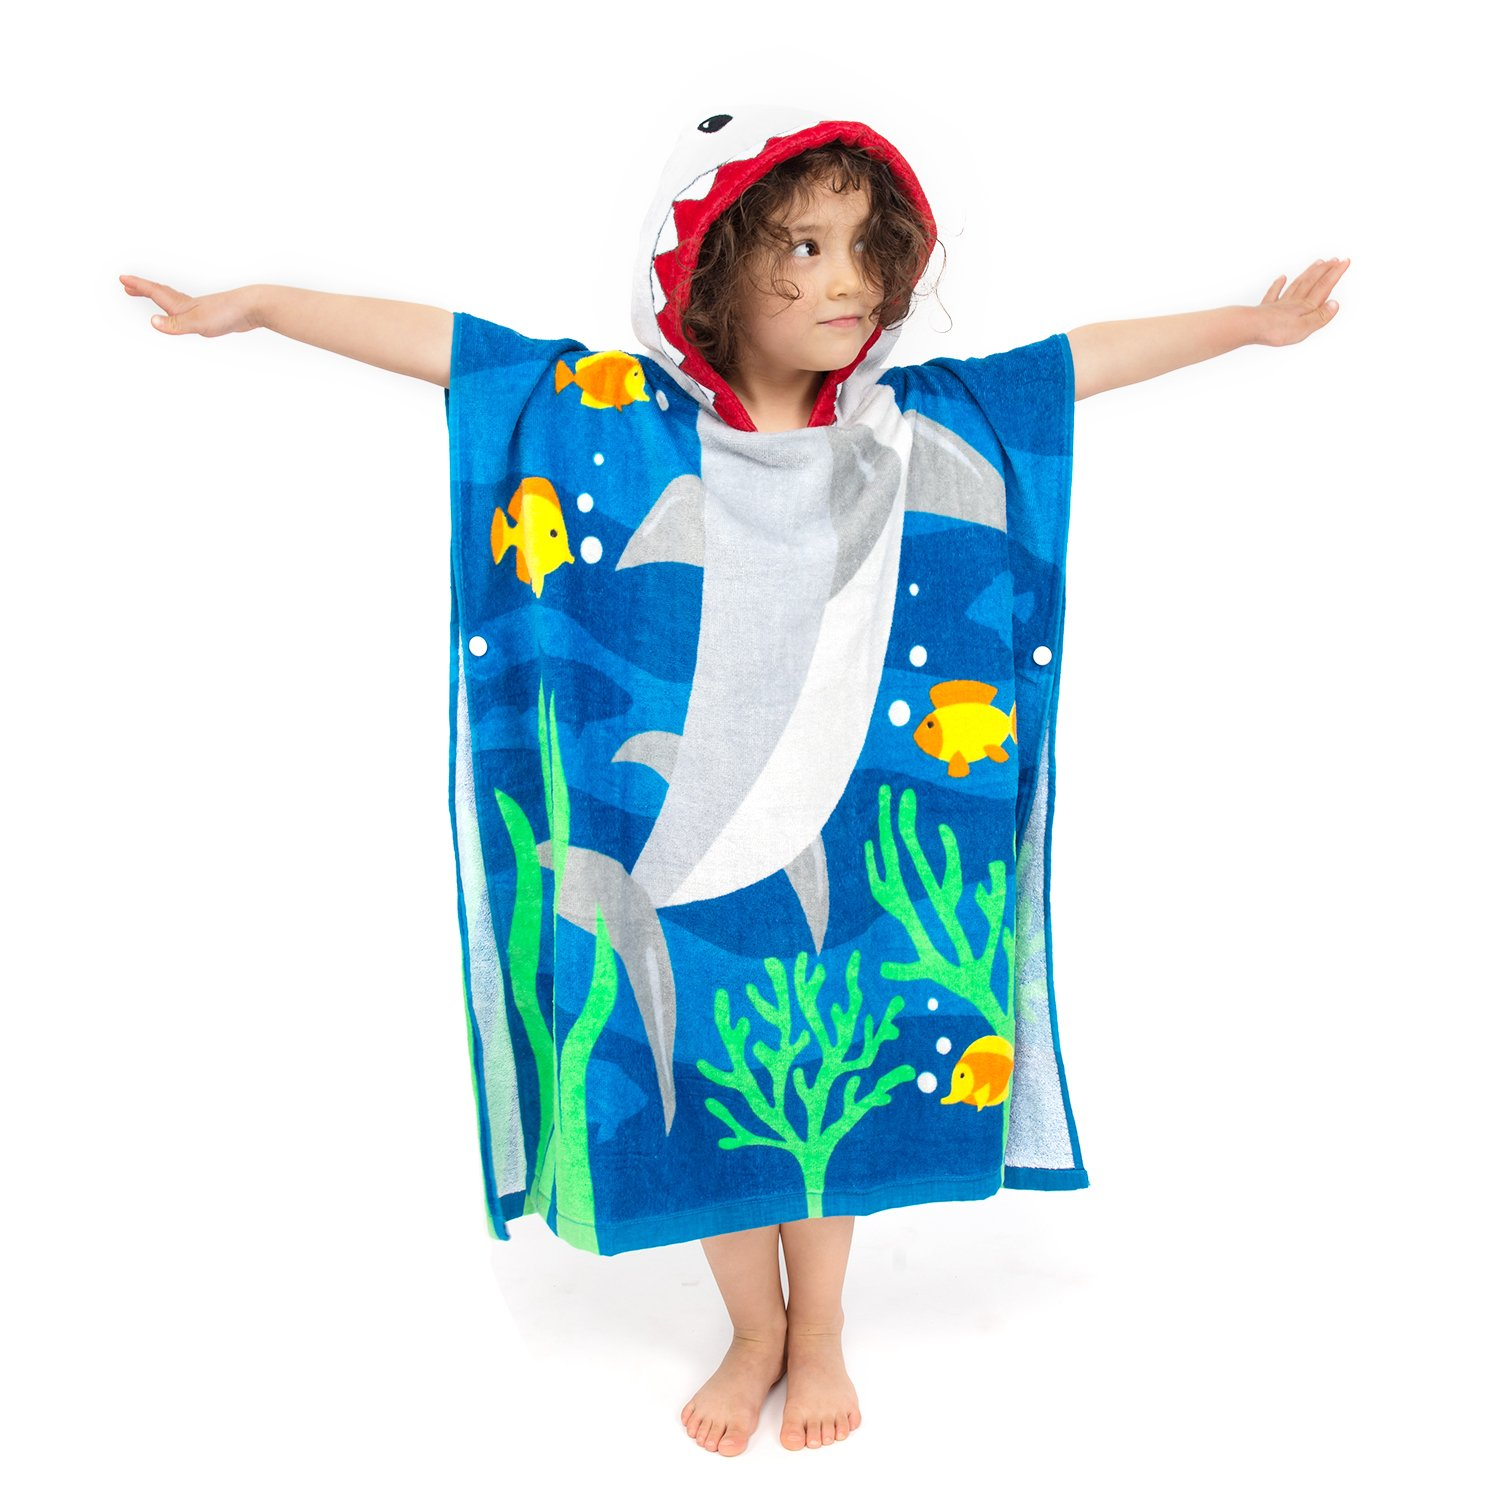 ZINGLIFE Hooded Towels for Kids Baby Boys Girls Toddlers Child Poncho Bath Towel for Beach Pool 100% Cotton Ultra Breathable Soft Enough Thick for Winter Size 24'' x 47''(Brave Shark) by ZINGLIFE (Image #4)